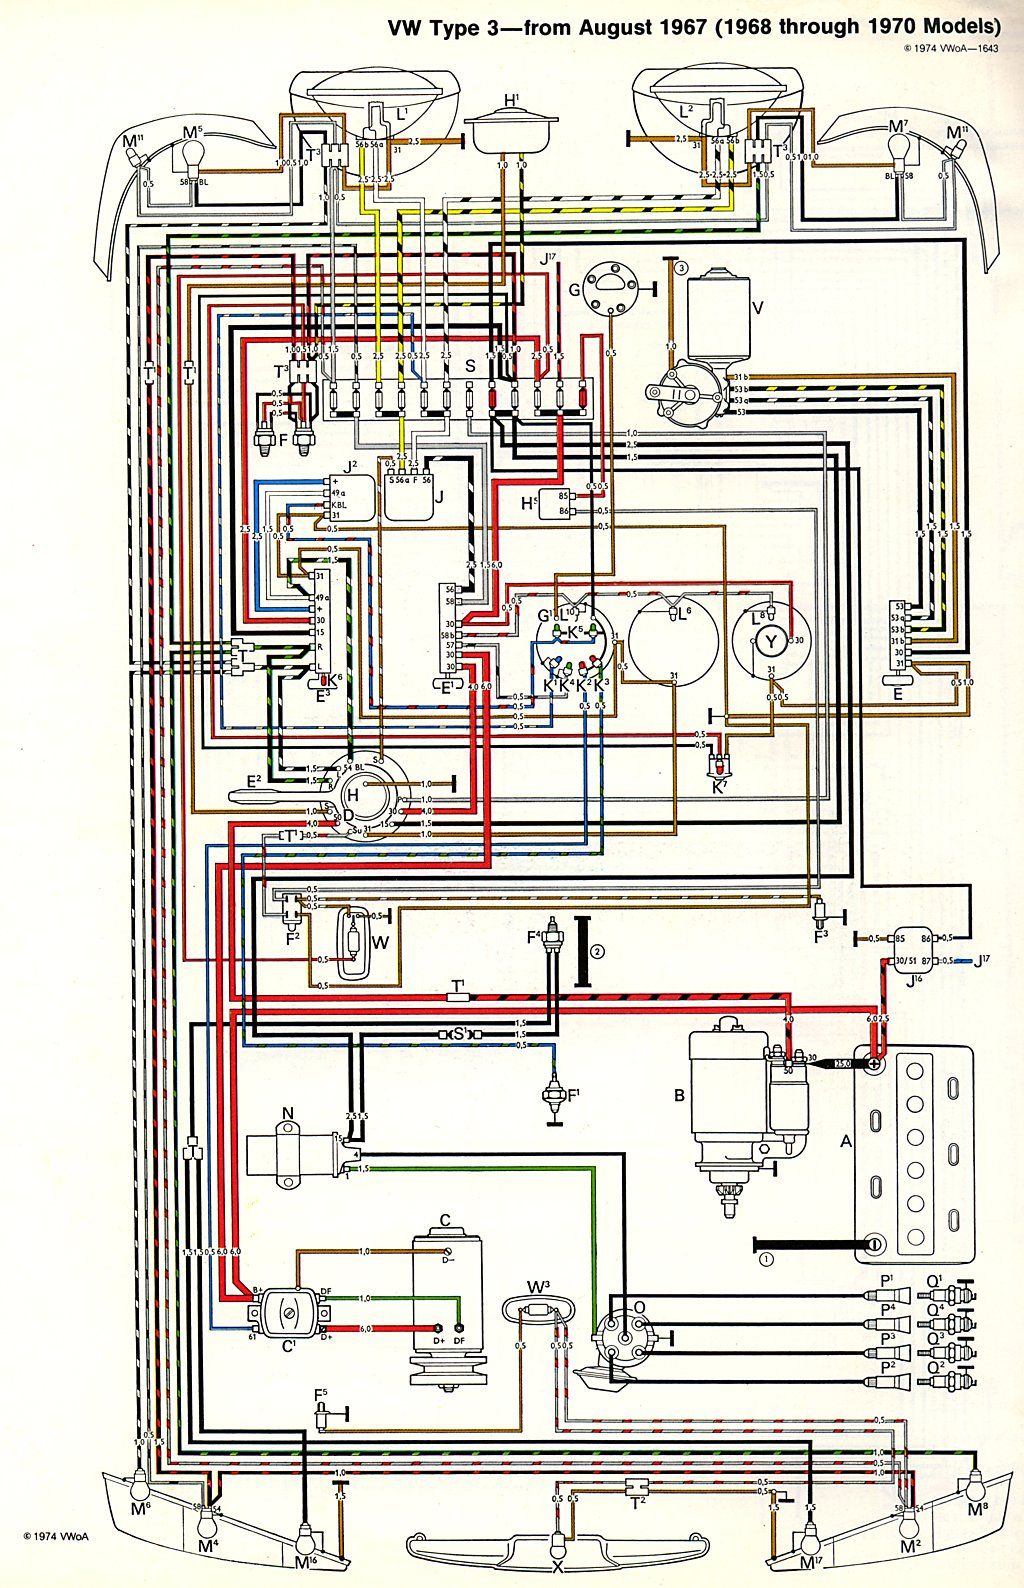 type3_6870 vw thing wiring diagram 1974 beetle heater diagram \u2022 wiring 1971 vw bus wiring diagram at mr168.co